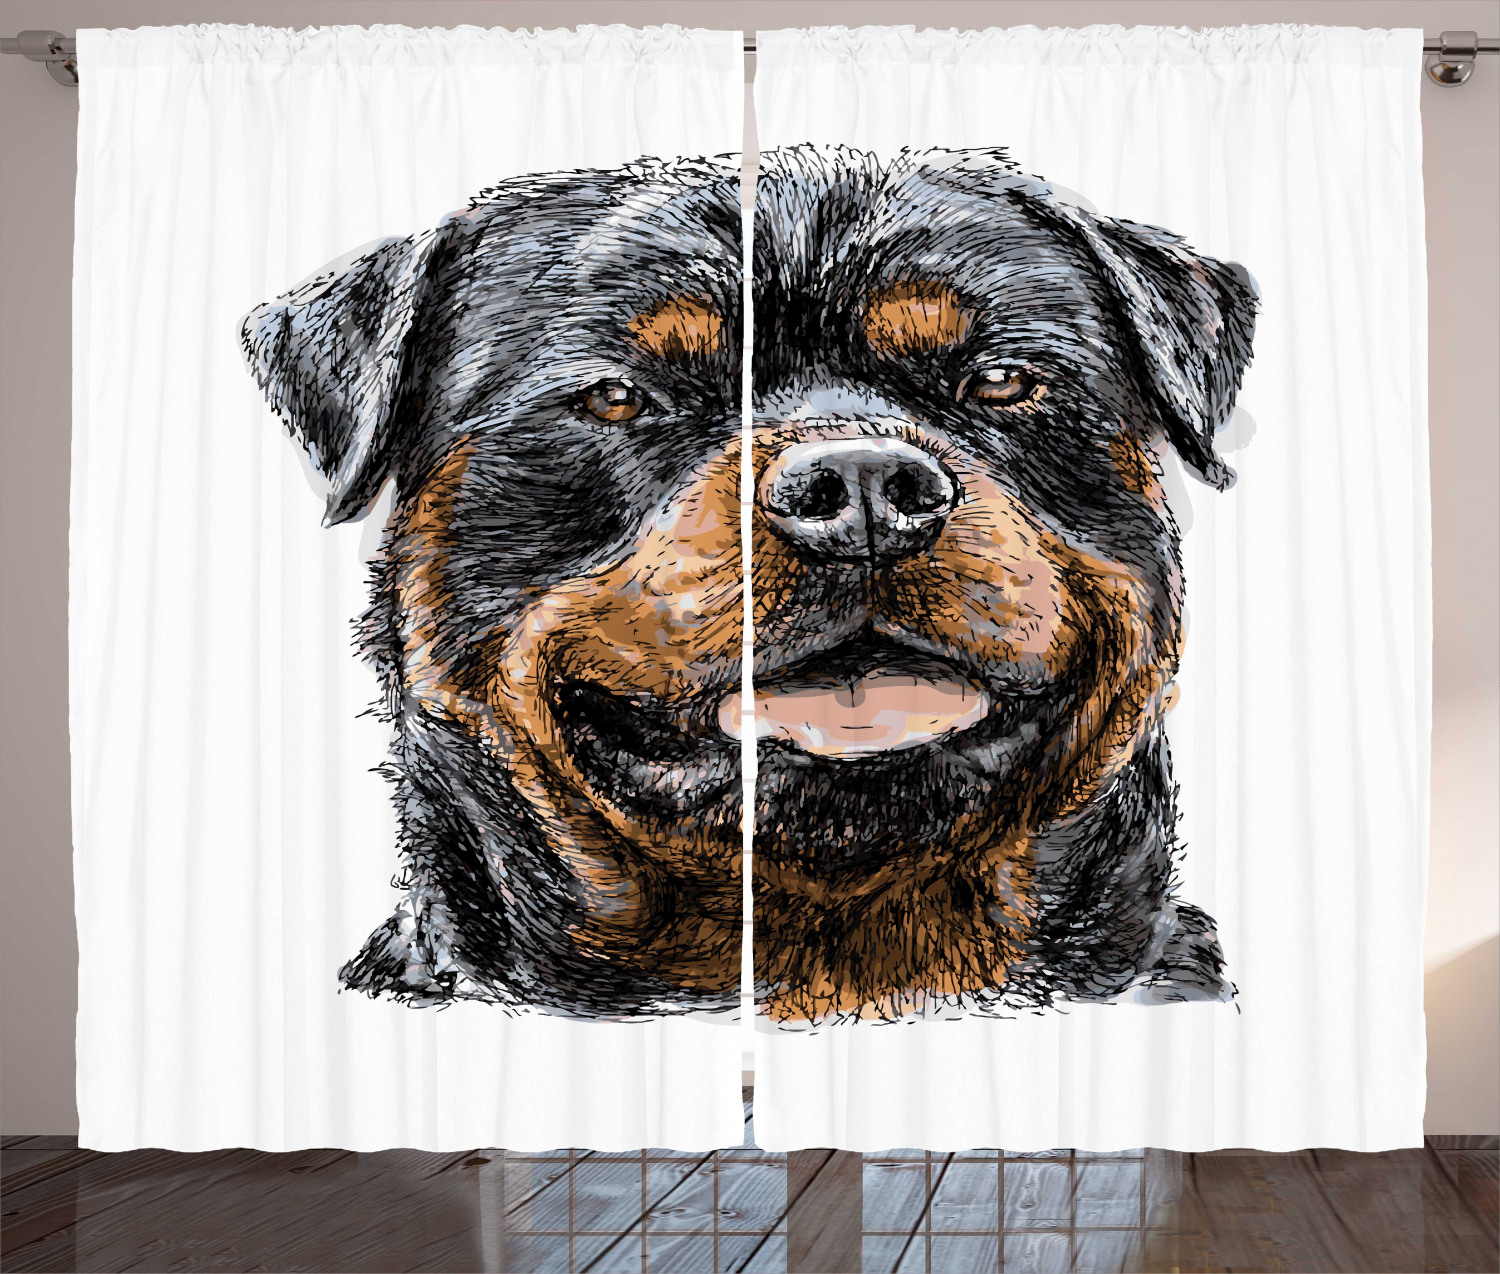 Rottweiler Curtains 2 Panels Set Hand Drawn Image Of Dog Type Realistic And Furry Window Drapes For Living Room Bedroom 108 W X 108 L Pale Cinnamon Tan And Dark Chestnut Brown By Ambesonne